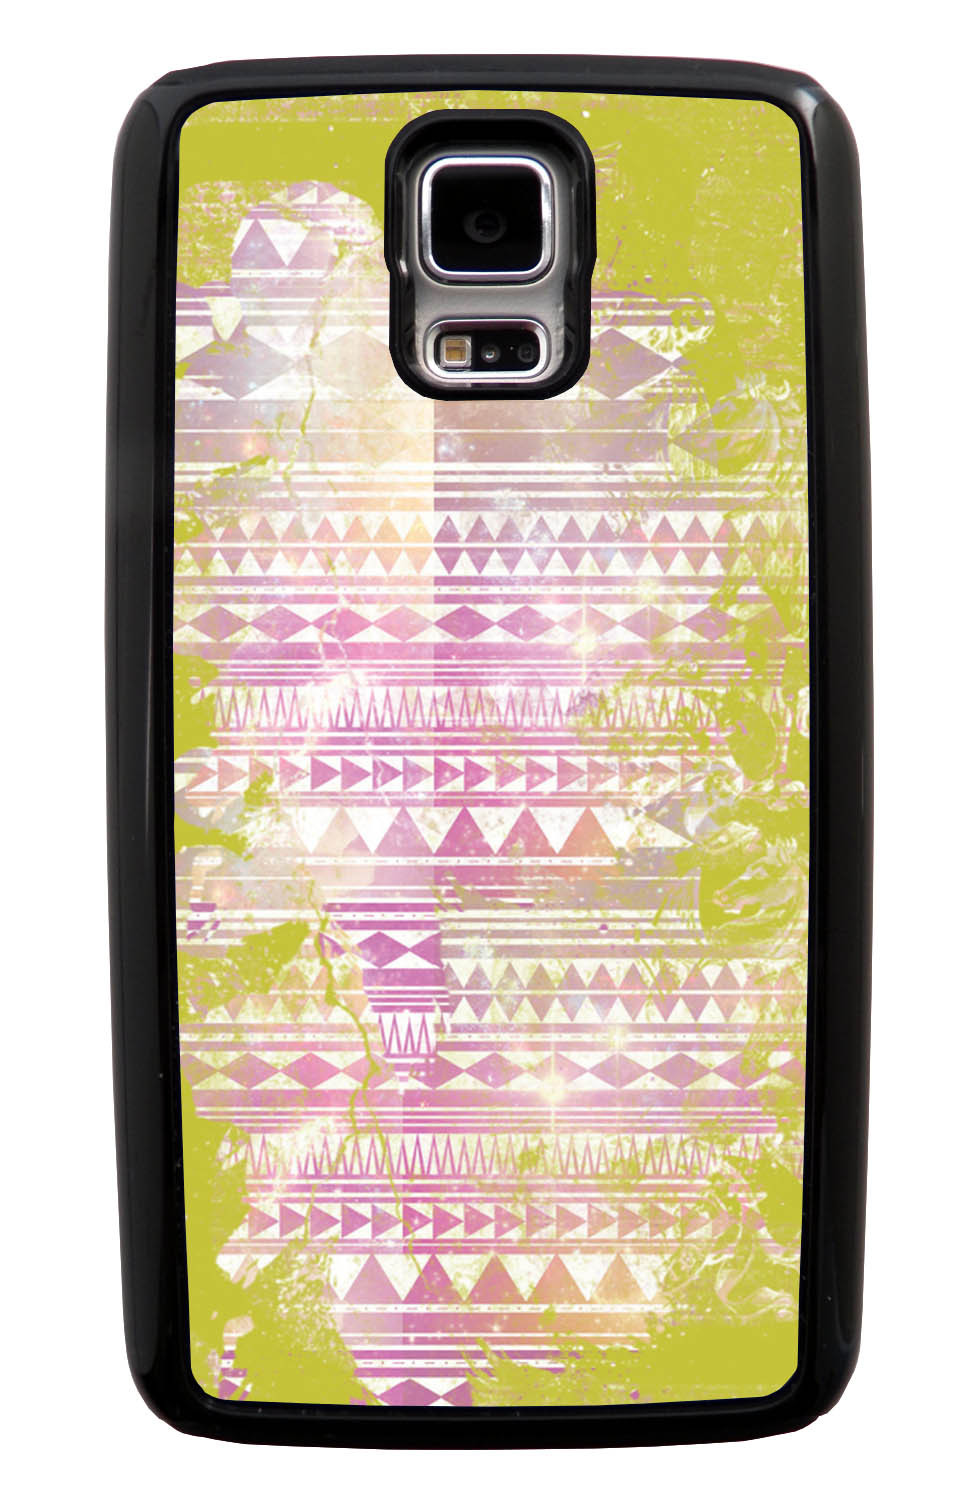 Samsung Galaxy S5 / SV Aztec Case - Yellow and White Paint with Pink - Paint Splatter Overlay - Black Tough Hybrid Case